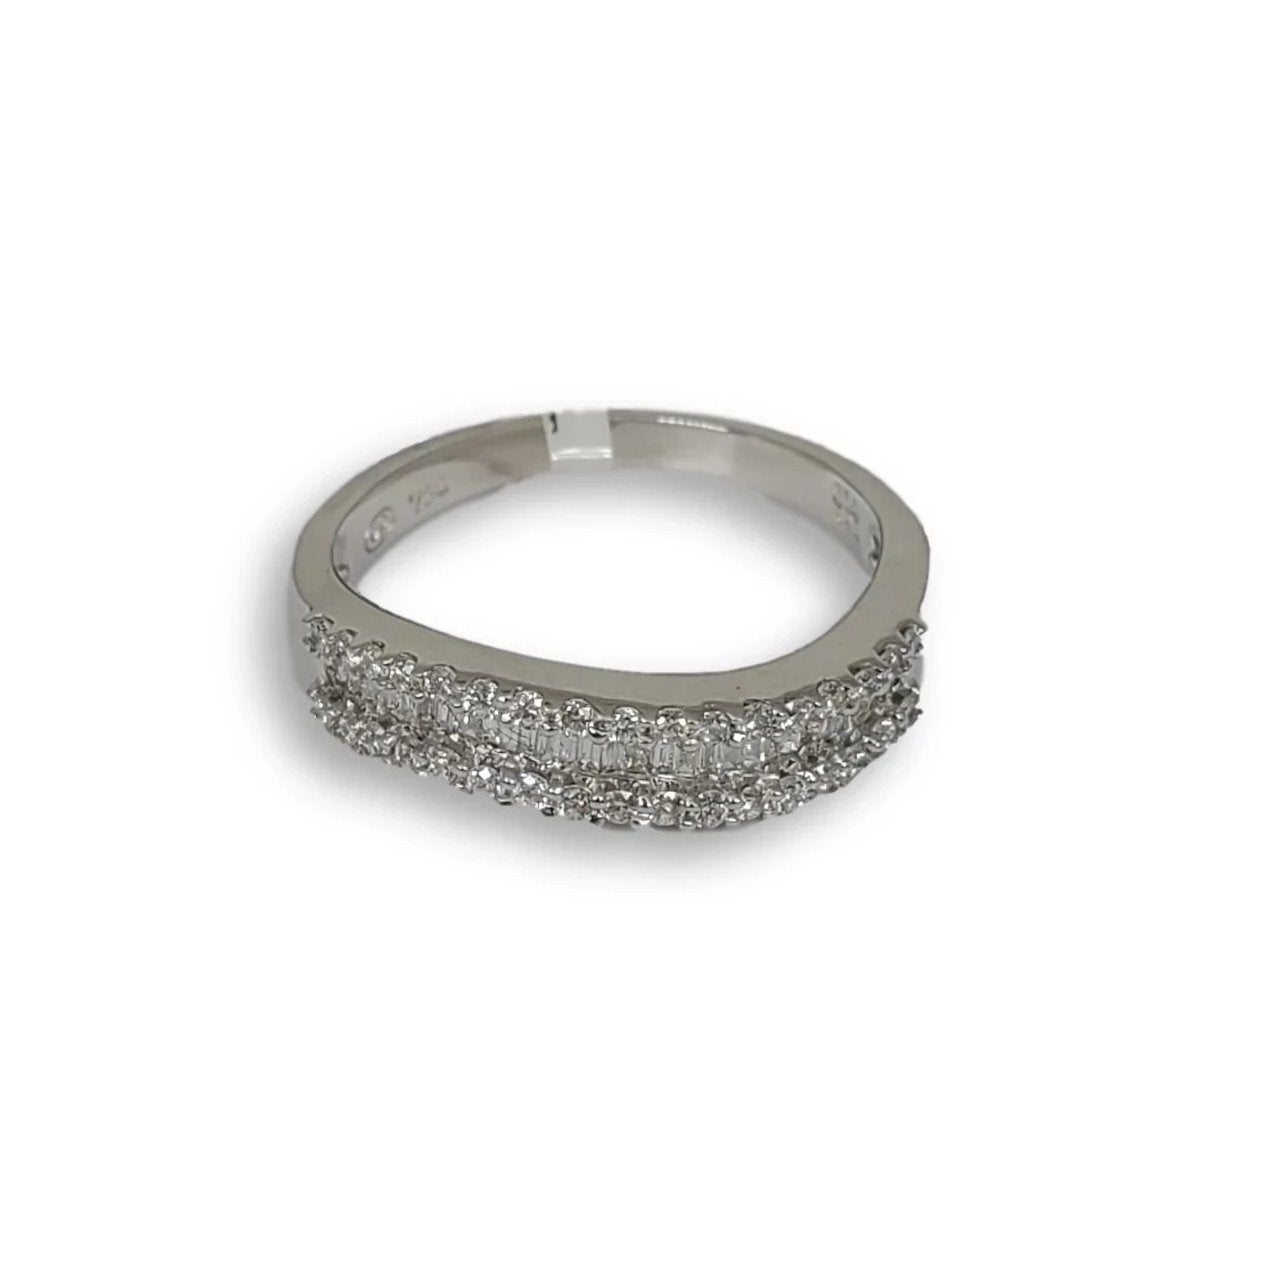 Bague de fiancaille Nadia 0.39ct de diamants VS en or blanc 18k - orquebec